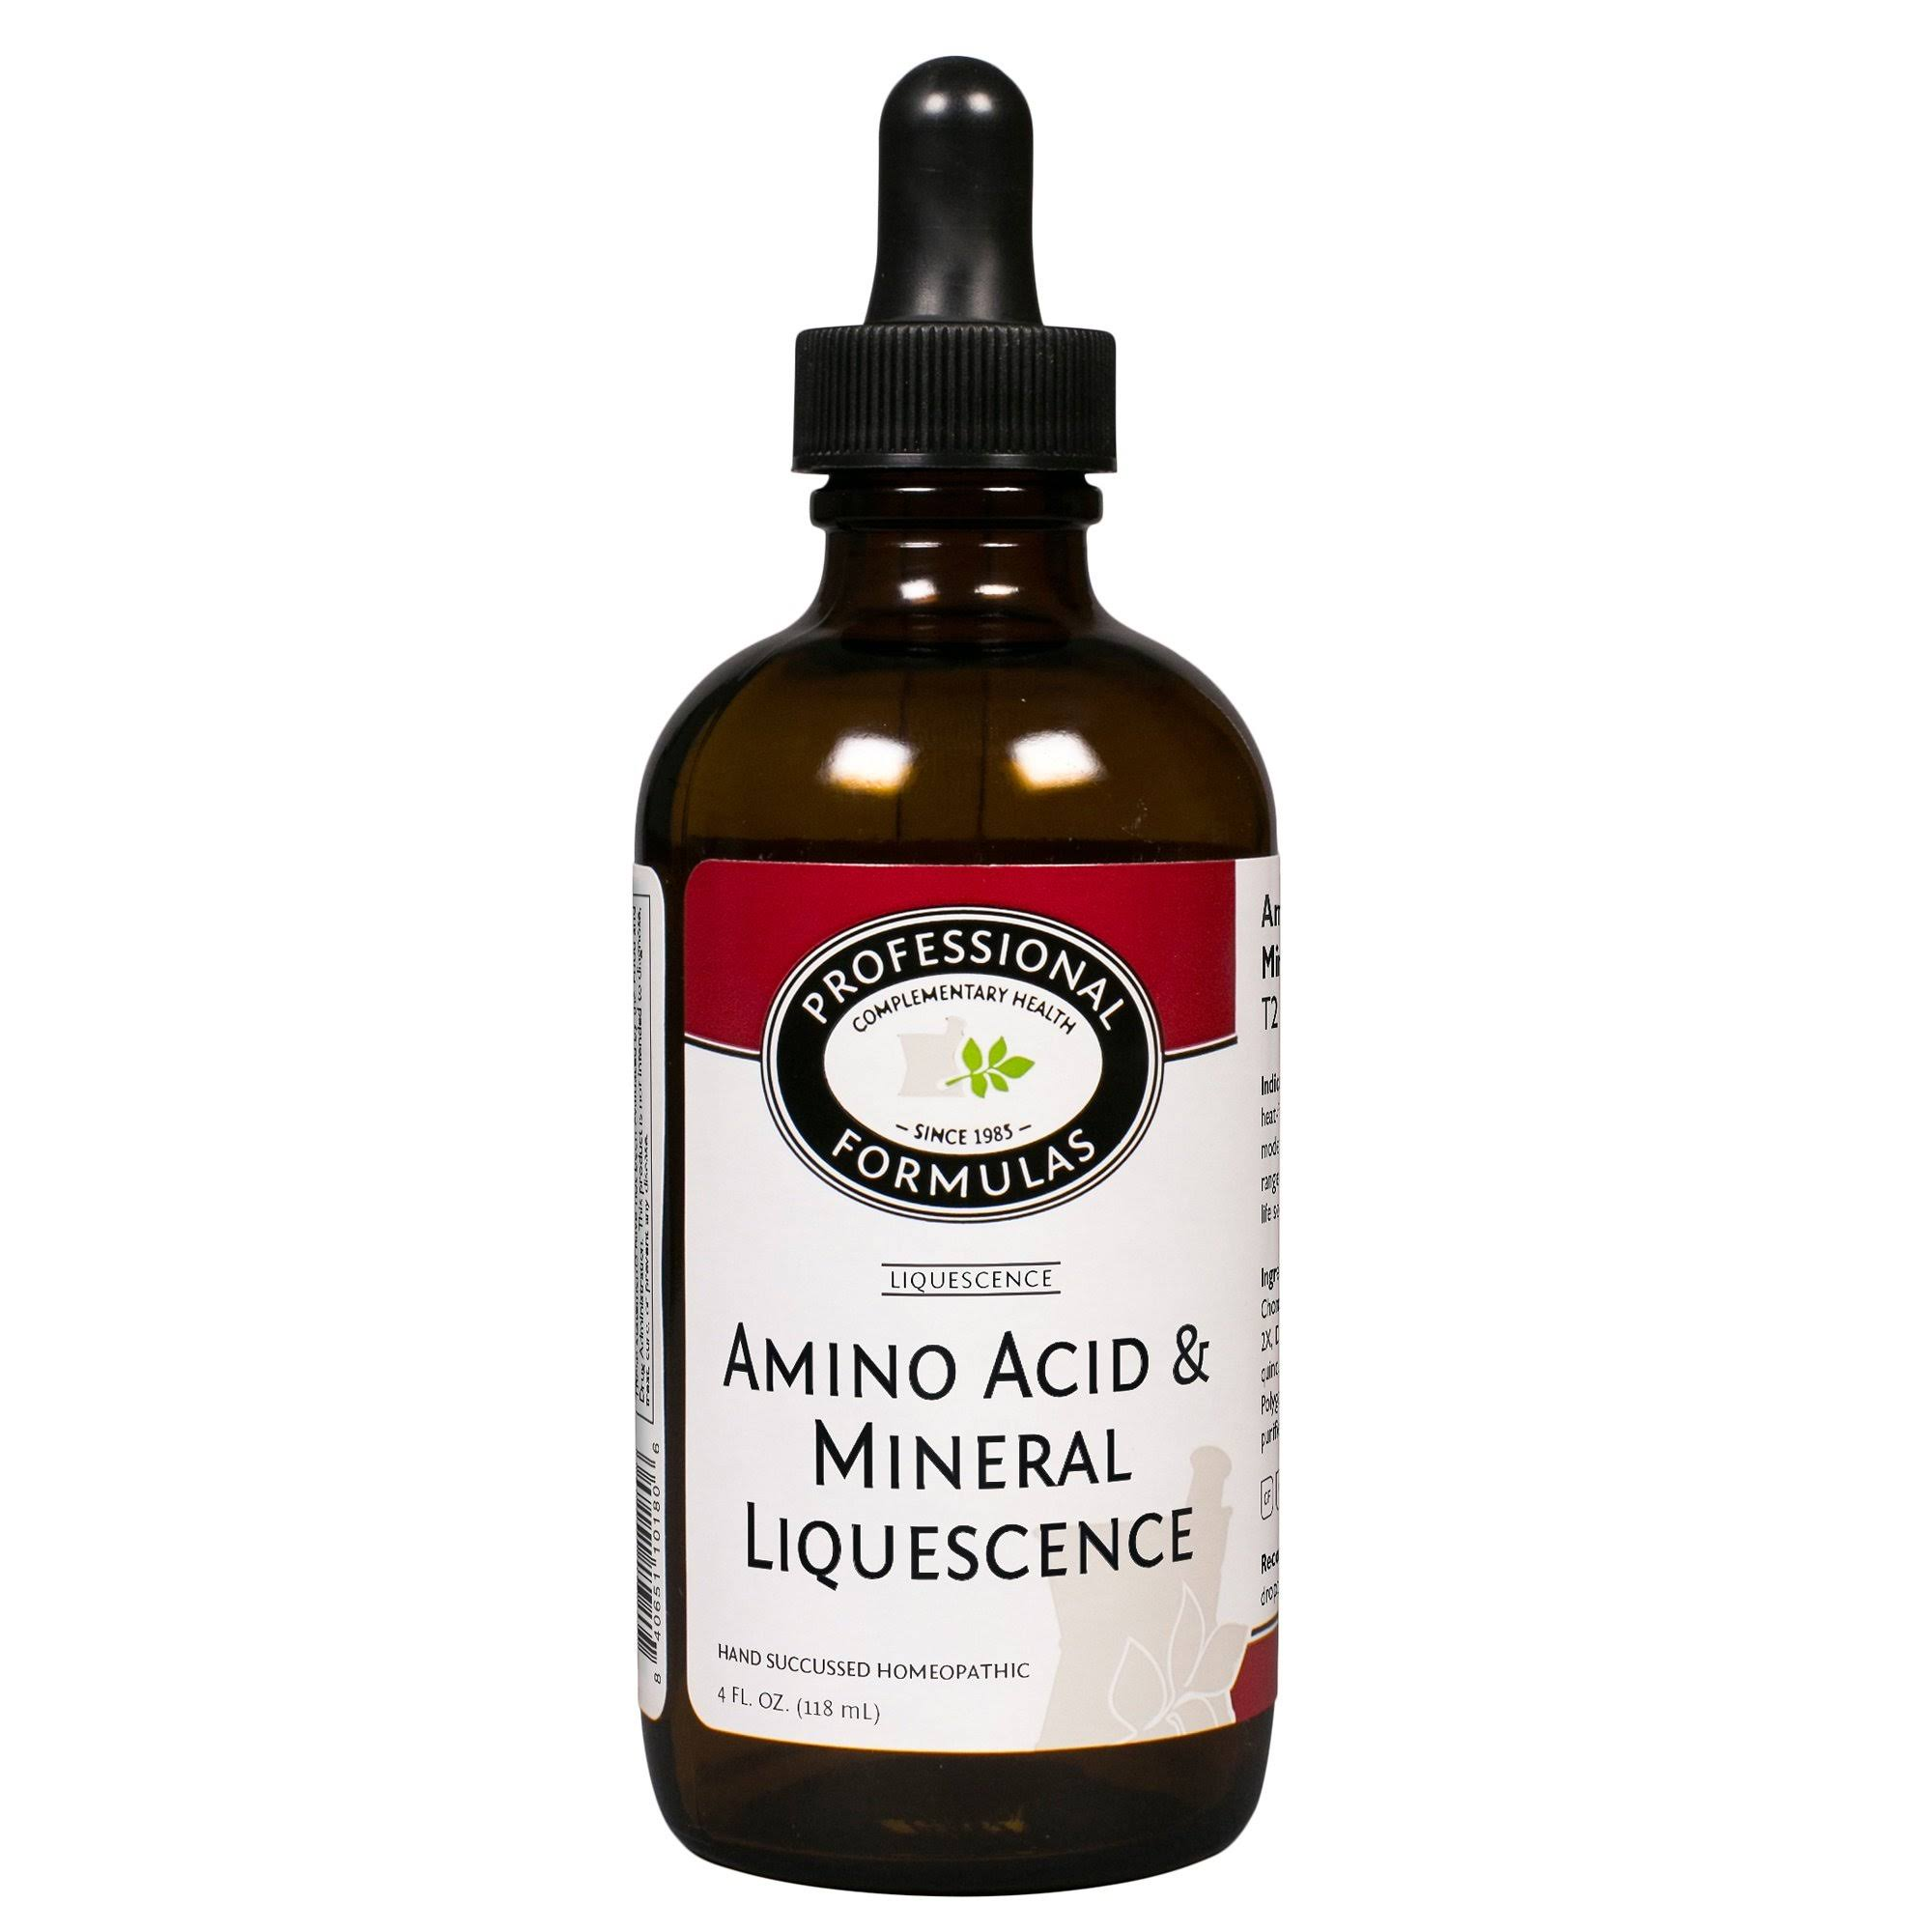 Amino Acid and Mineral Liquescence Professional Formulas 4 Ounces